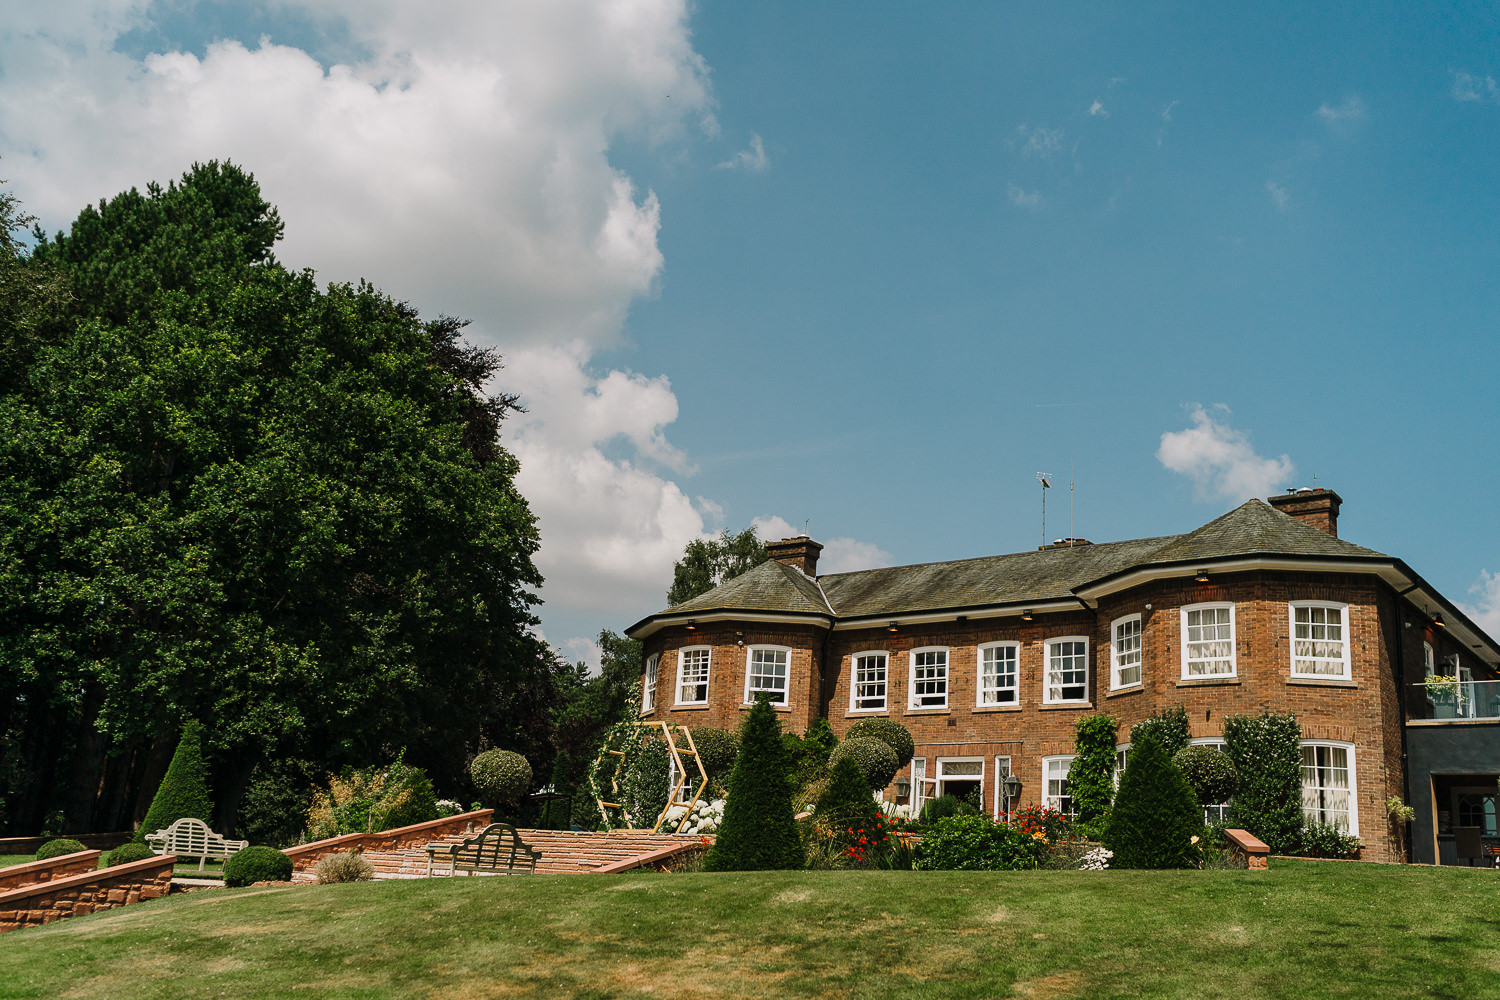 A photo of Delamere Manor